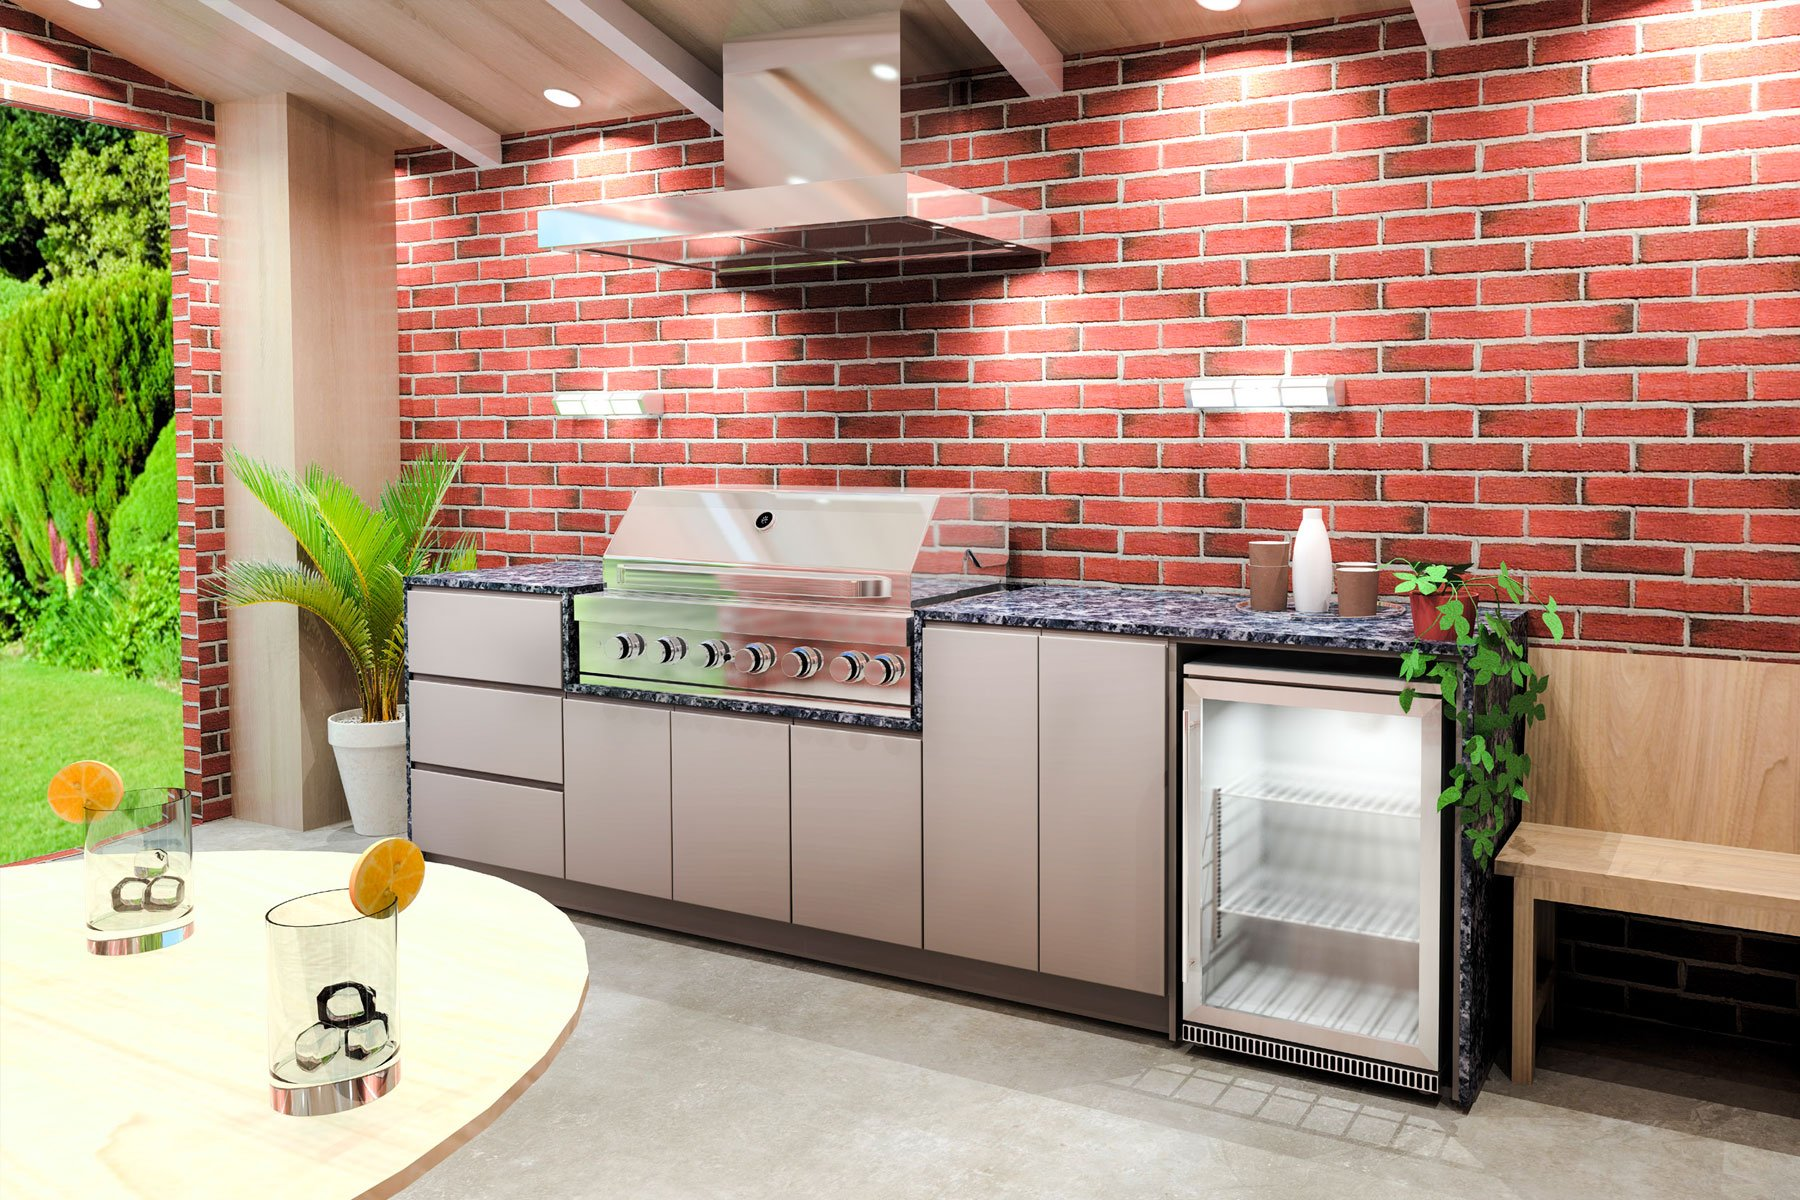 How You Can Benefit From Outdoor Kitchen Cabinets